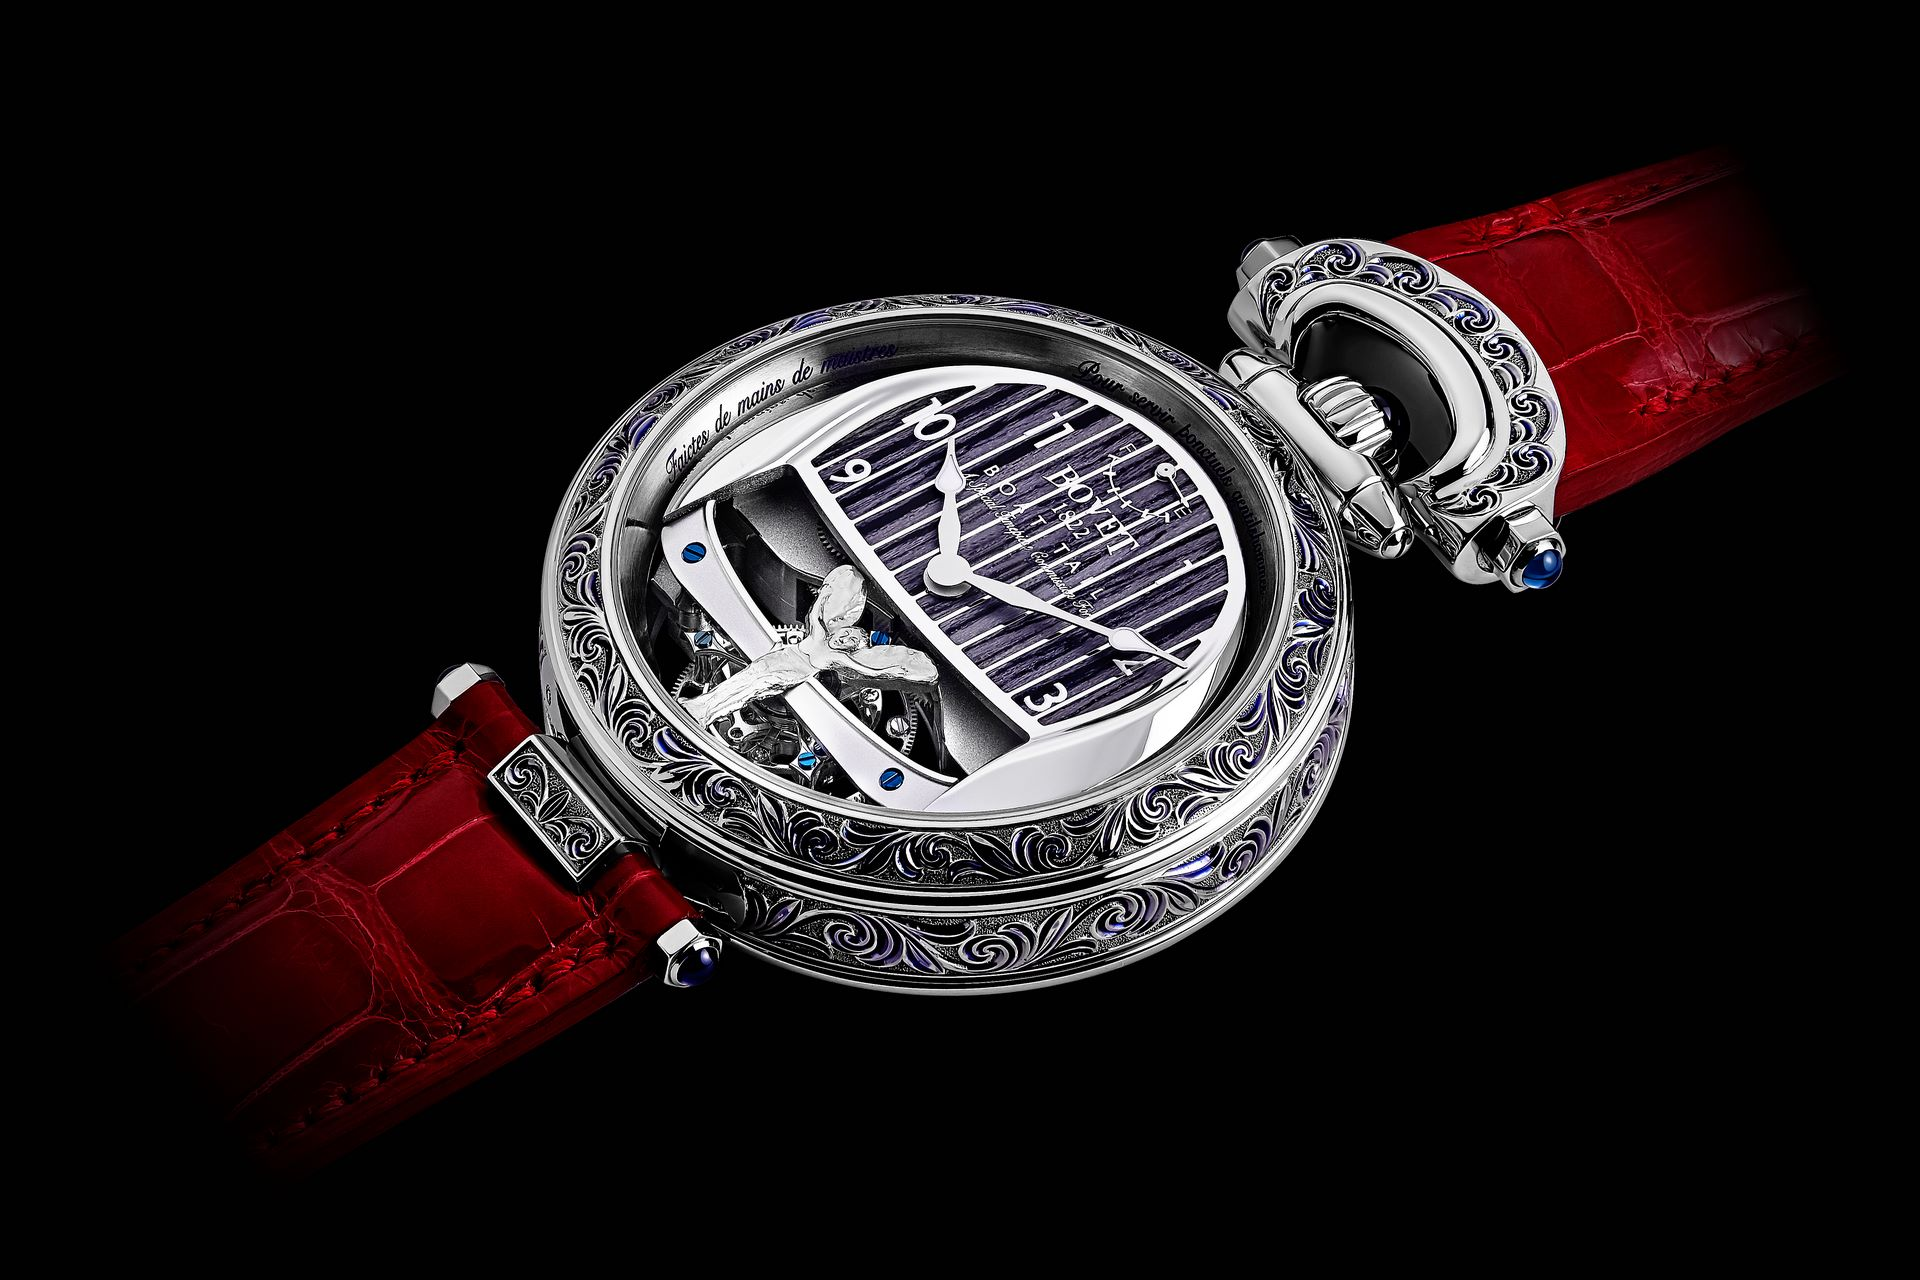 Rolls-Royce-Boat-Tail-Bovet-1822-Watches-11